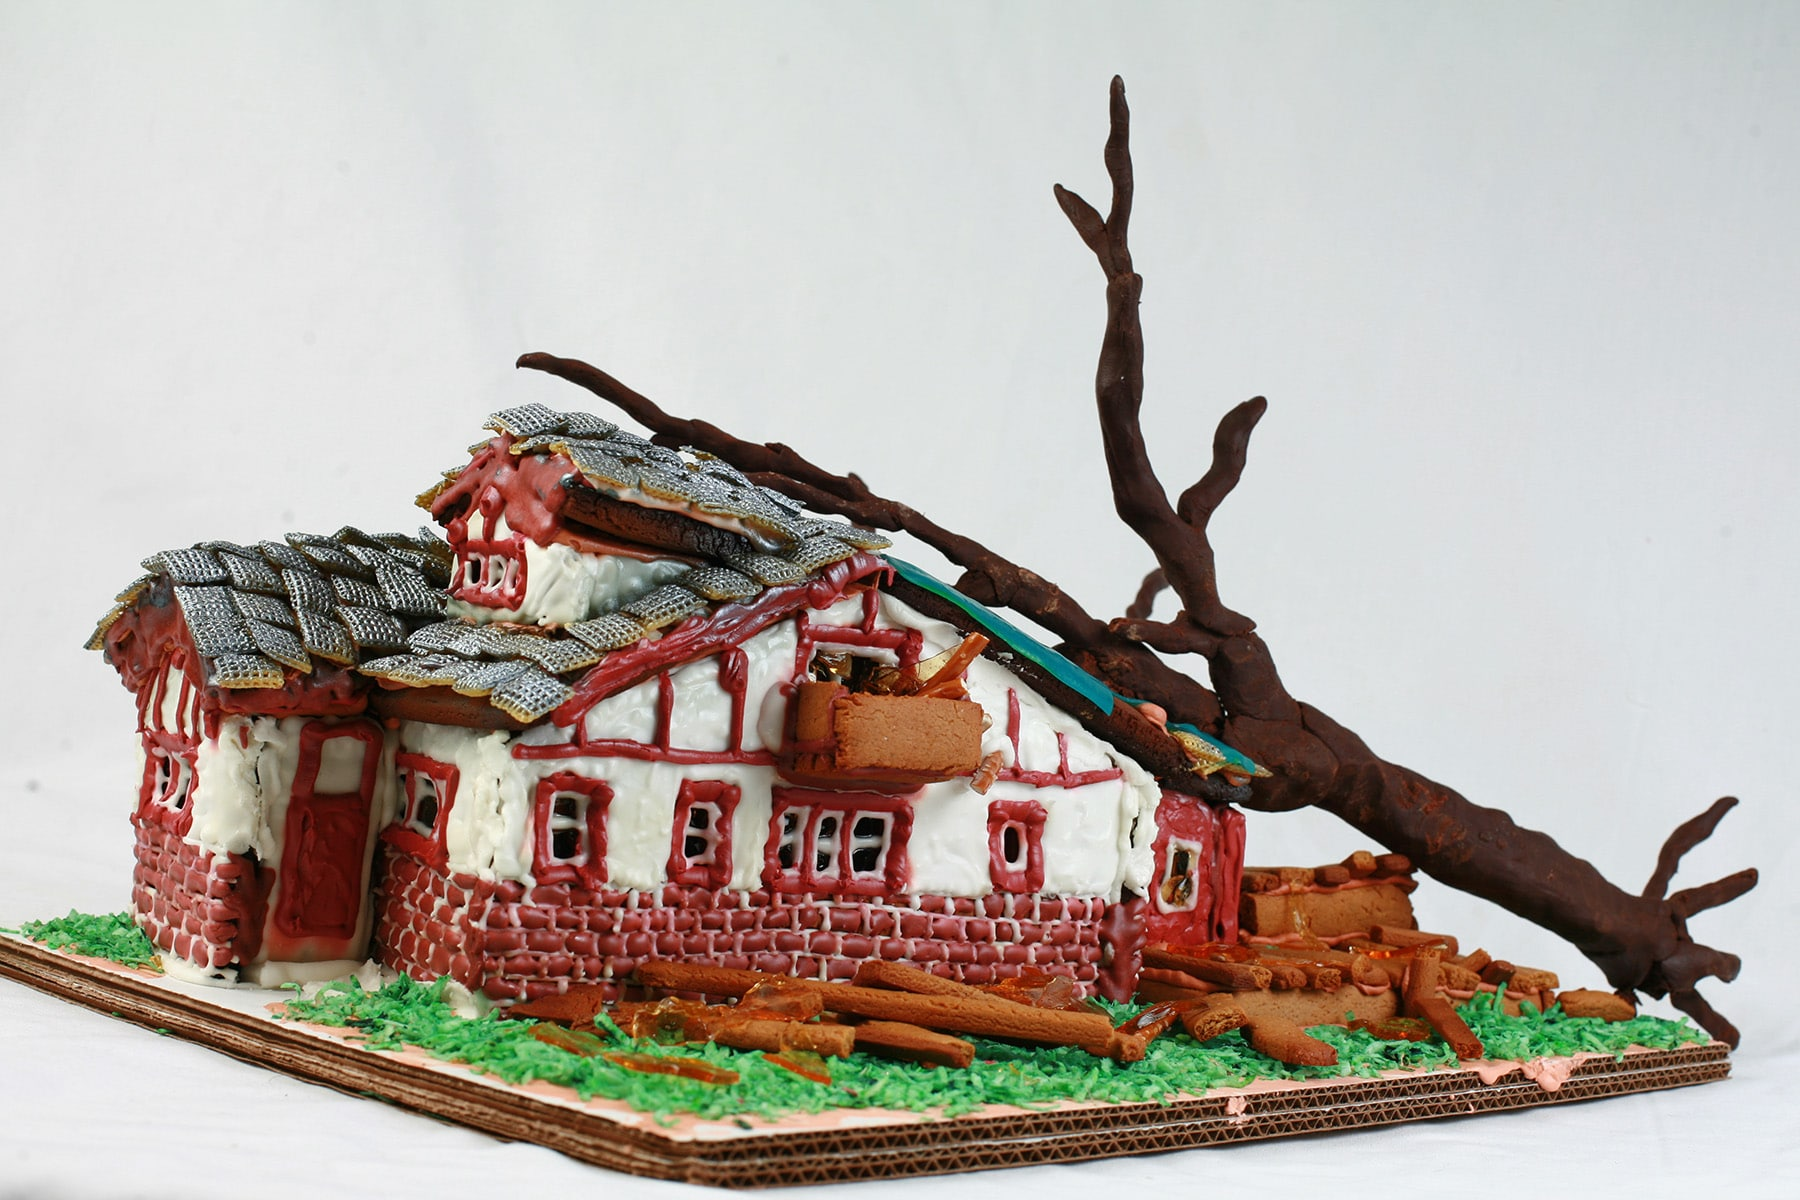 Side view of our tornado smashed gingerbread house.